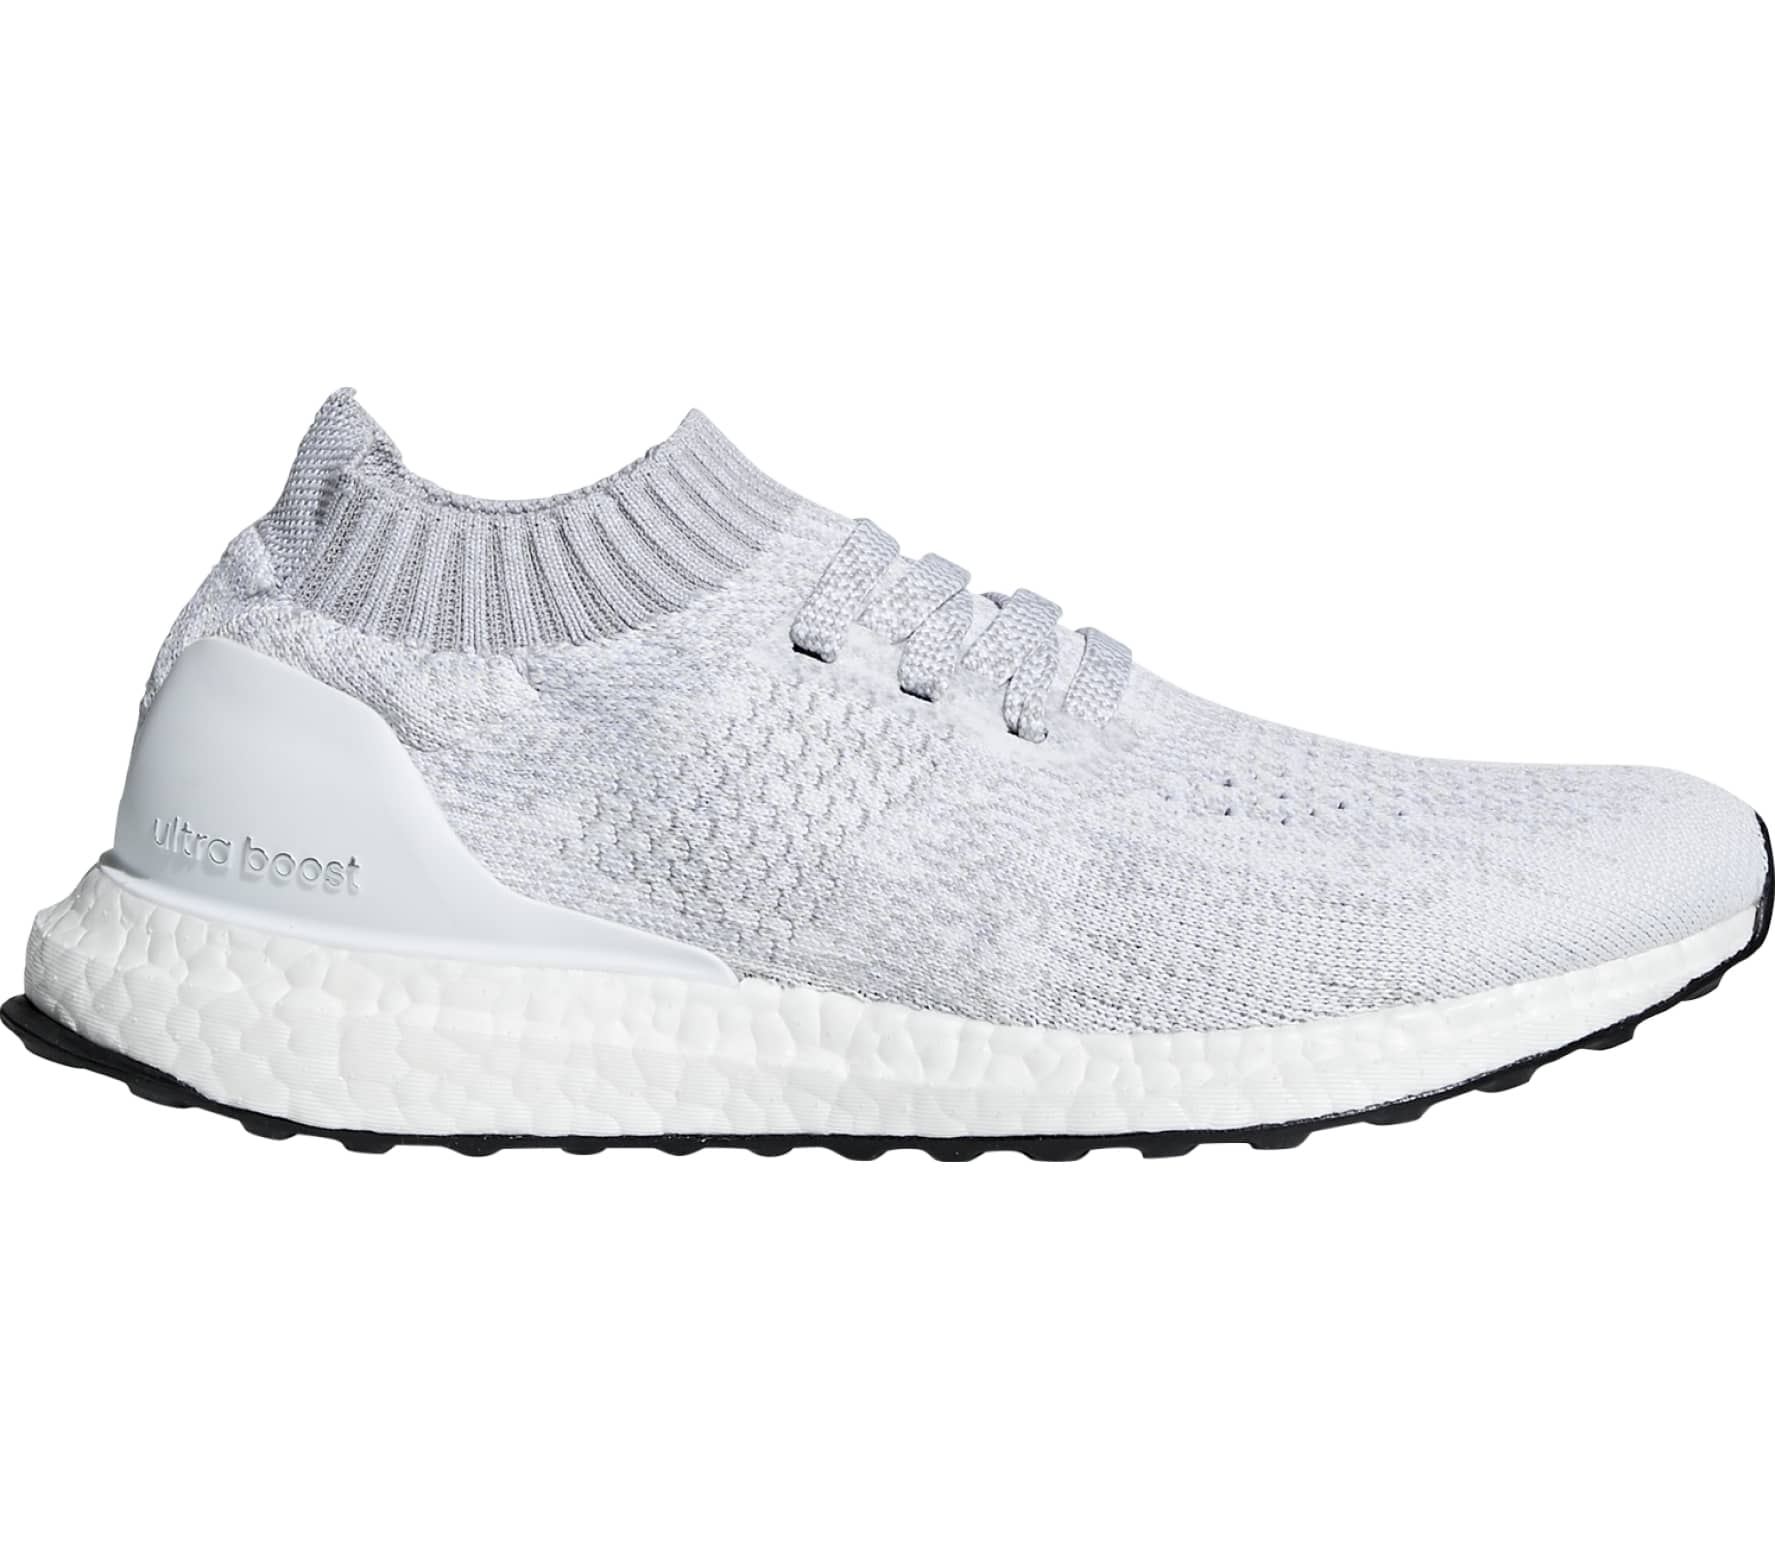 f6b0afe64657 Adidas - UltraBOOST Uncaged women s running shoes (white) - buy it ...